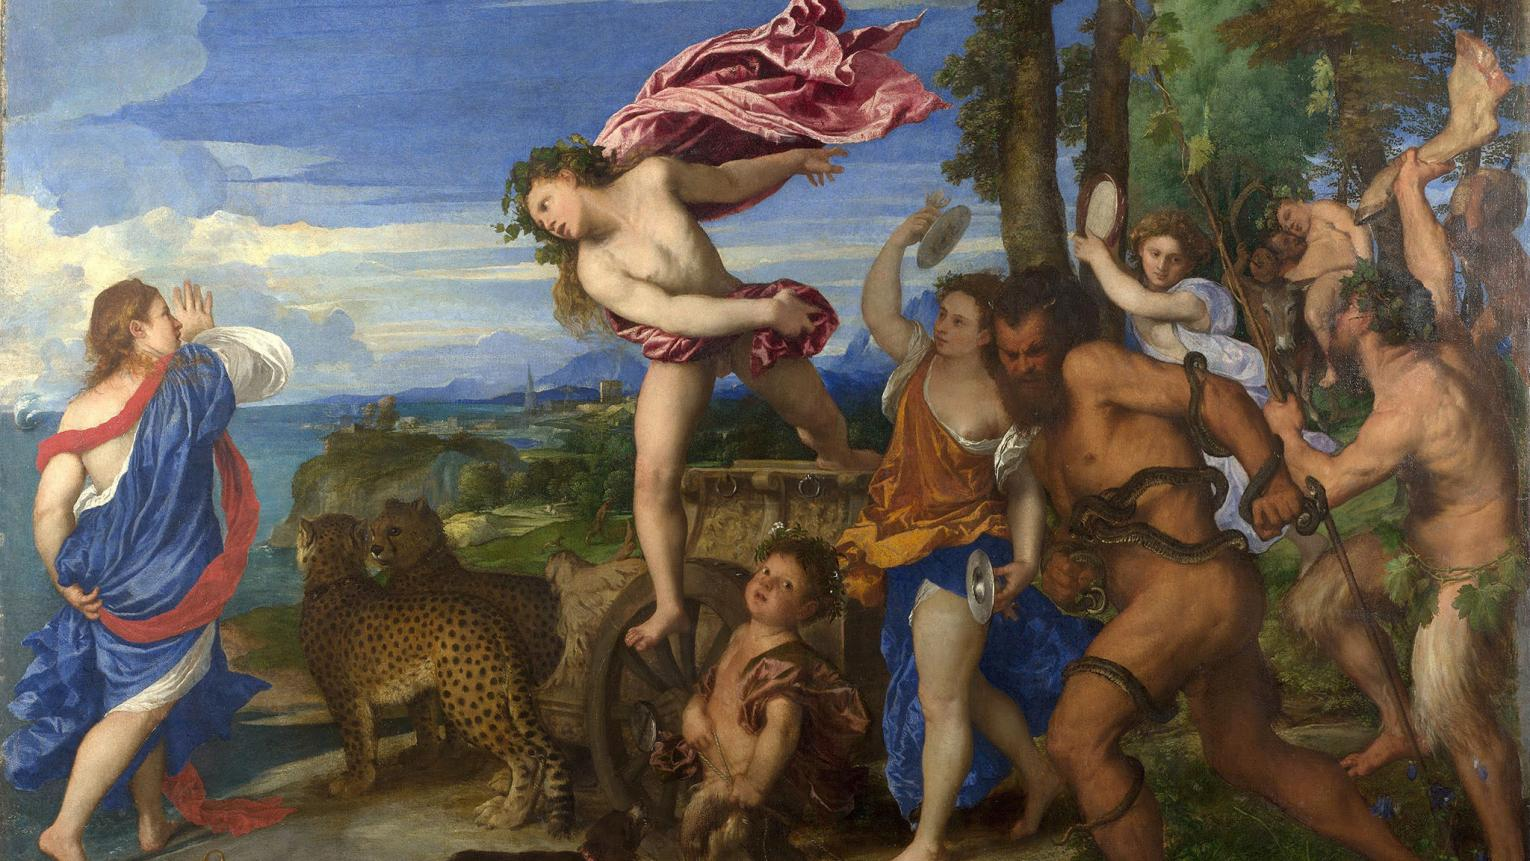 Bacchus and Ariadne, Titian, oil on canvas, National Gallery, London